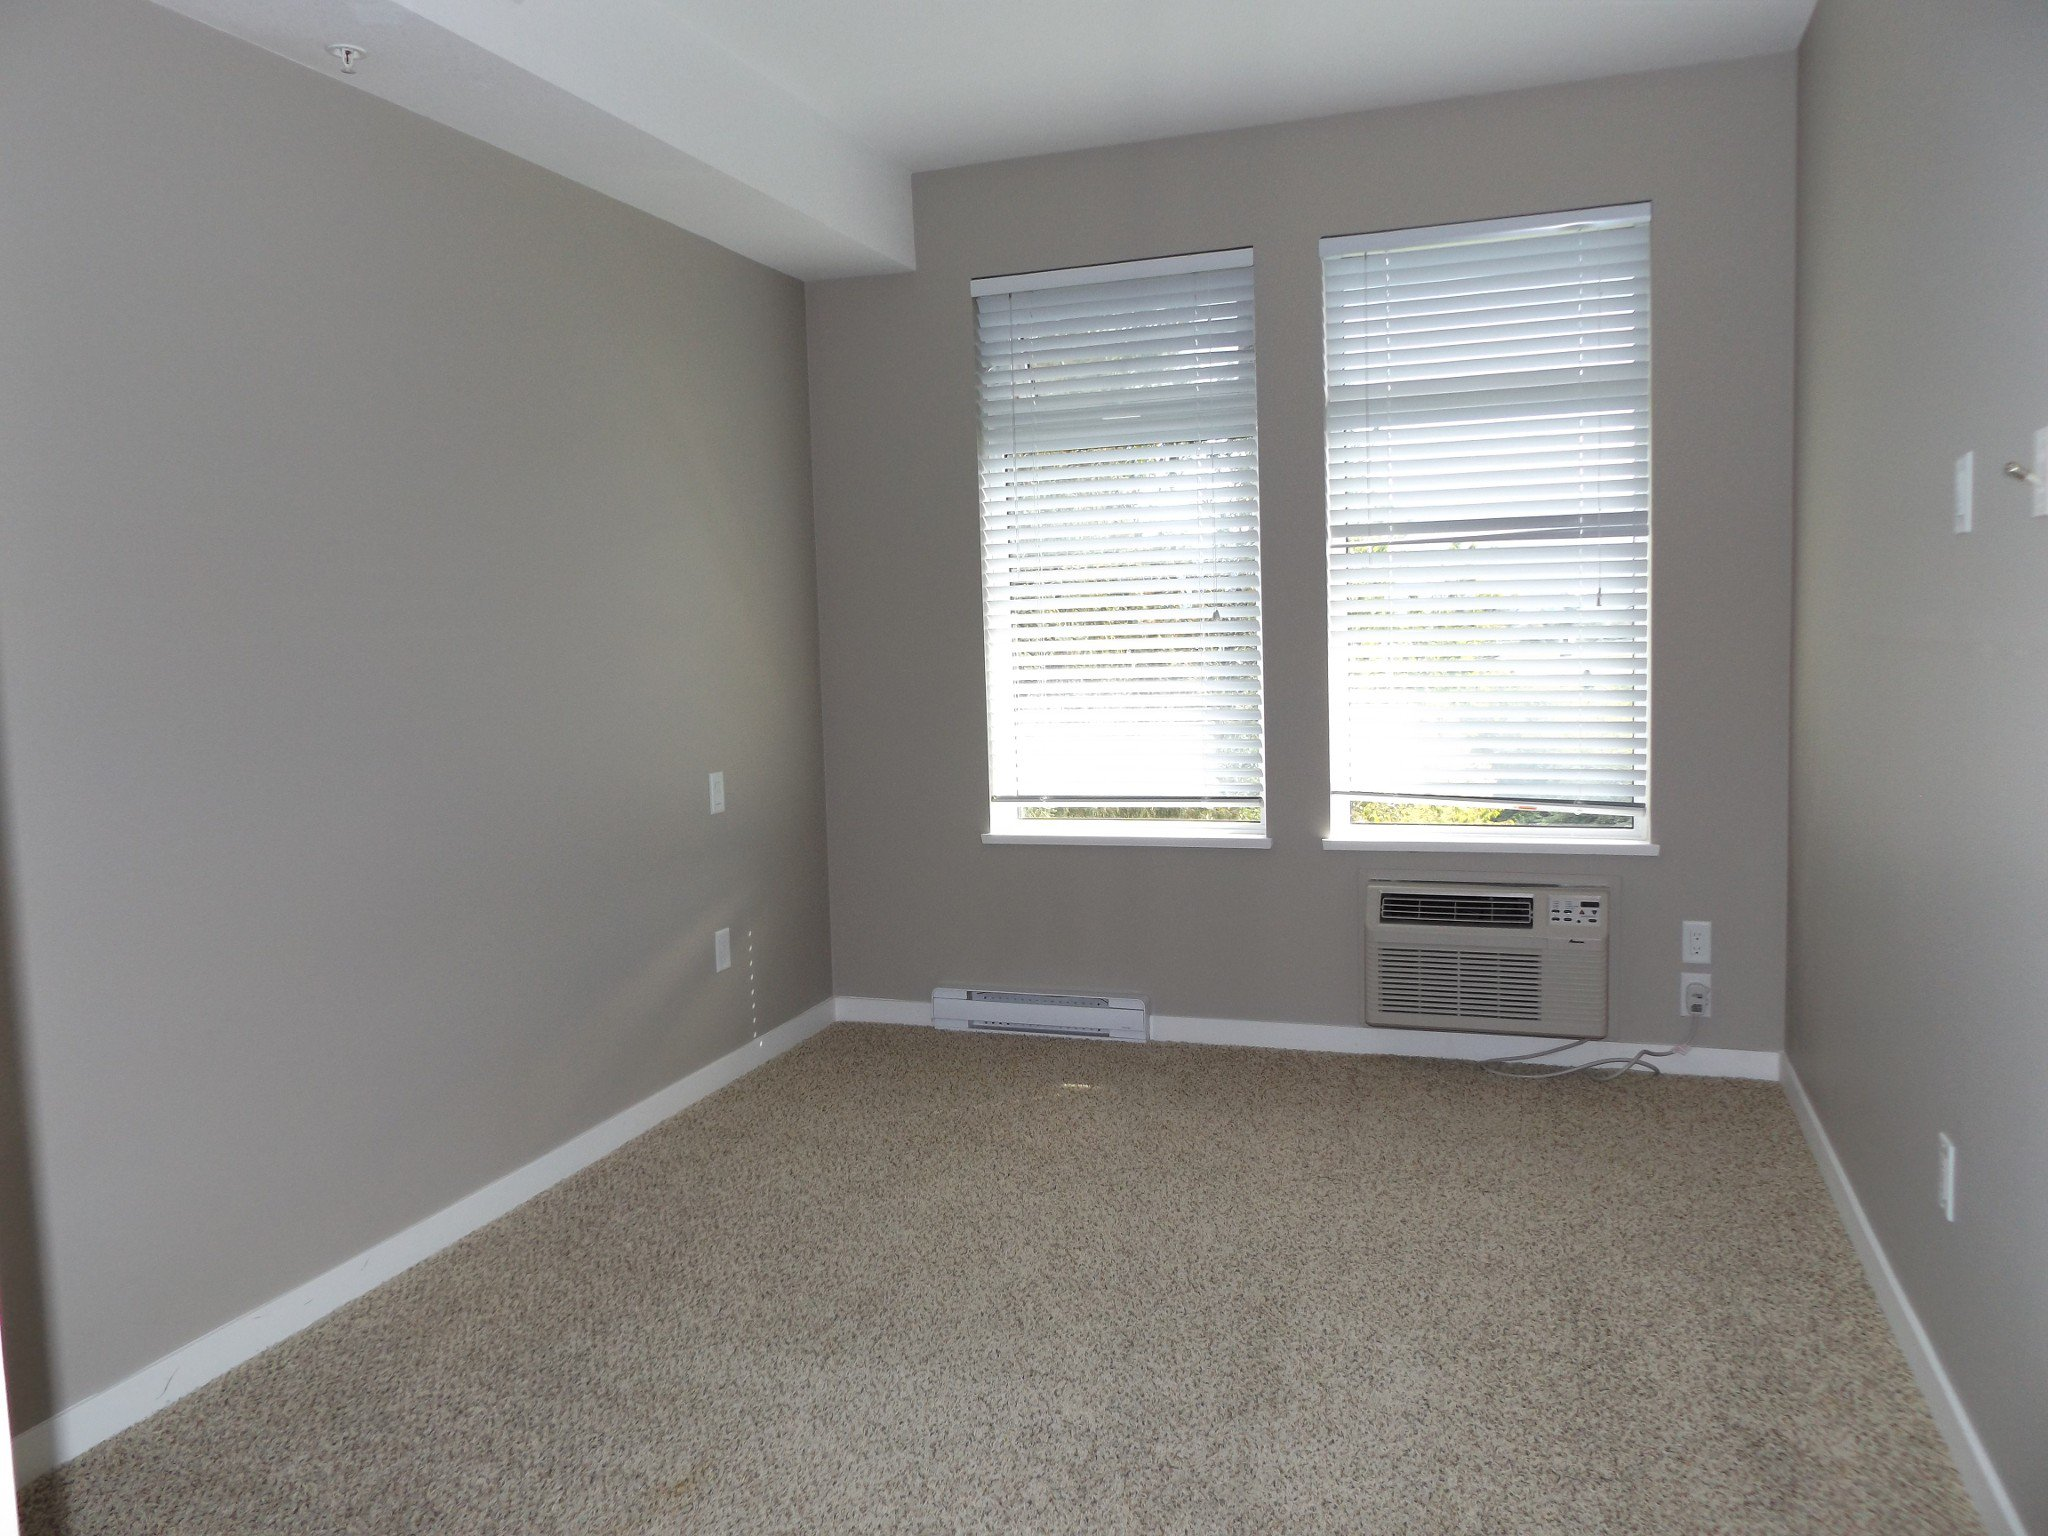 Photo 7: Photos: #308 2242 Whatcom Rd in Abbotsford: Abbotsford East Condo for rent